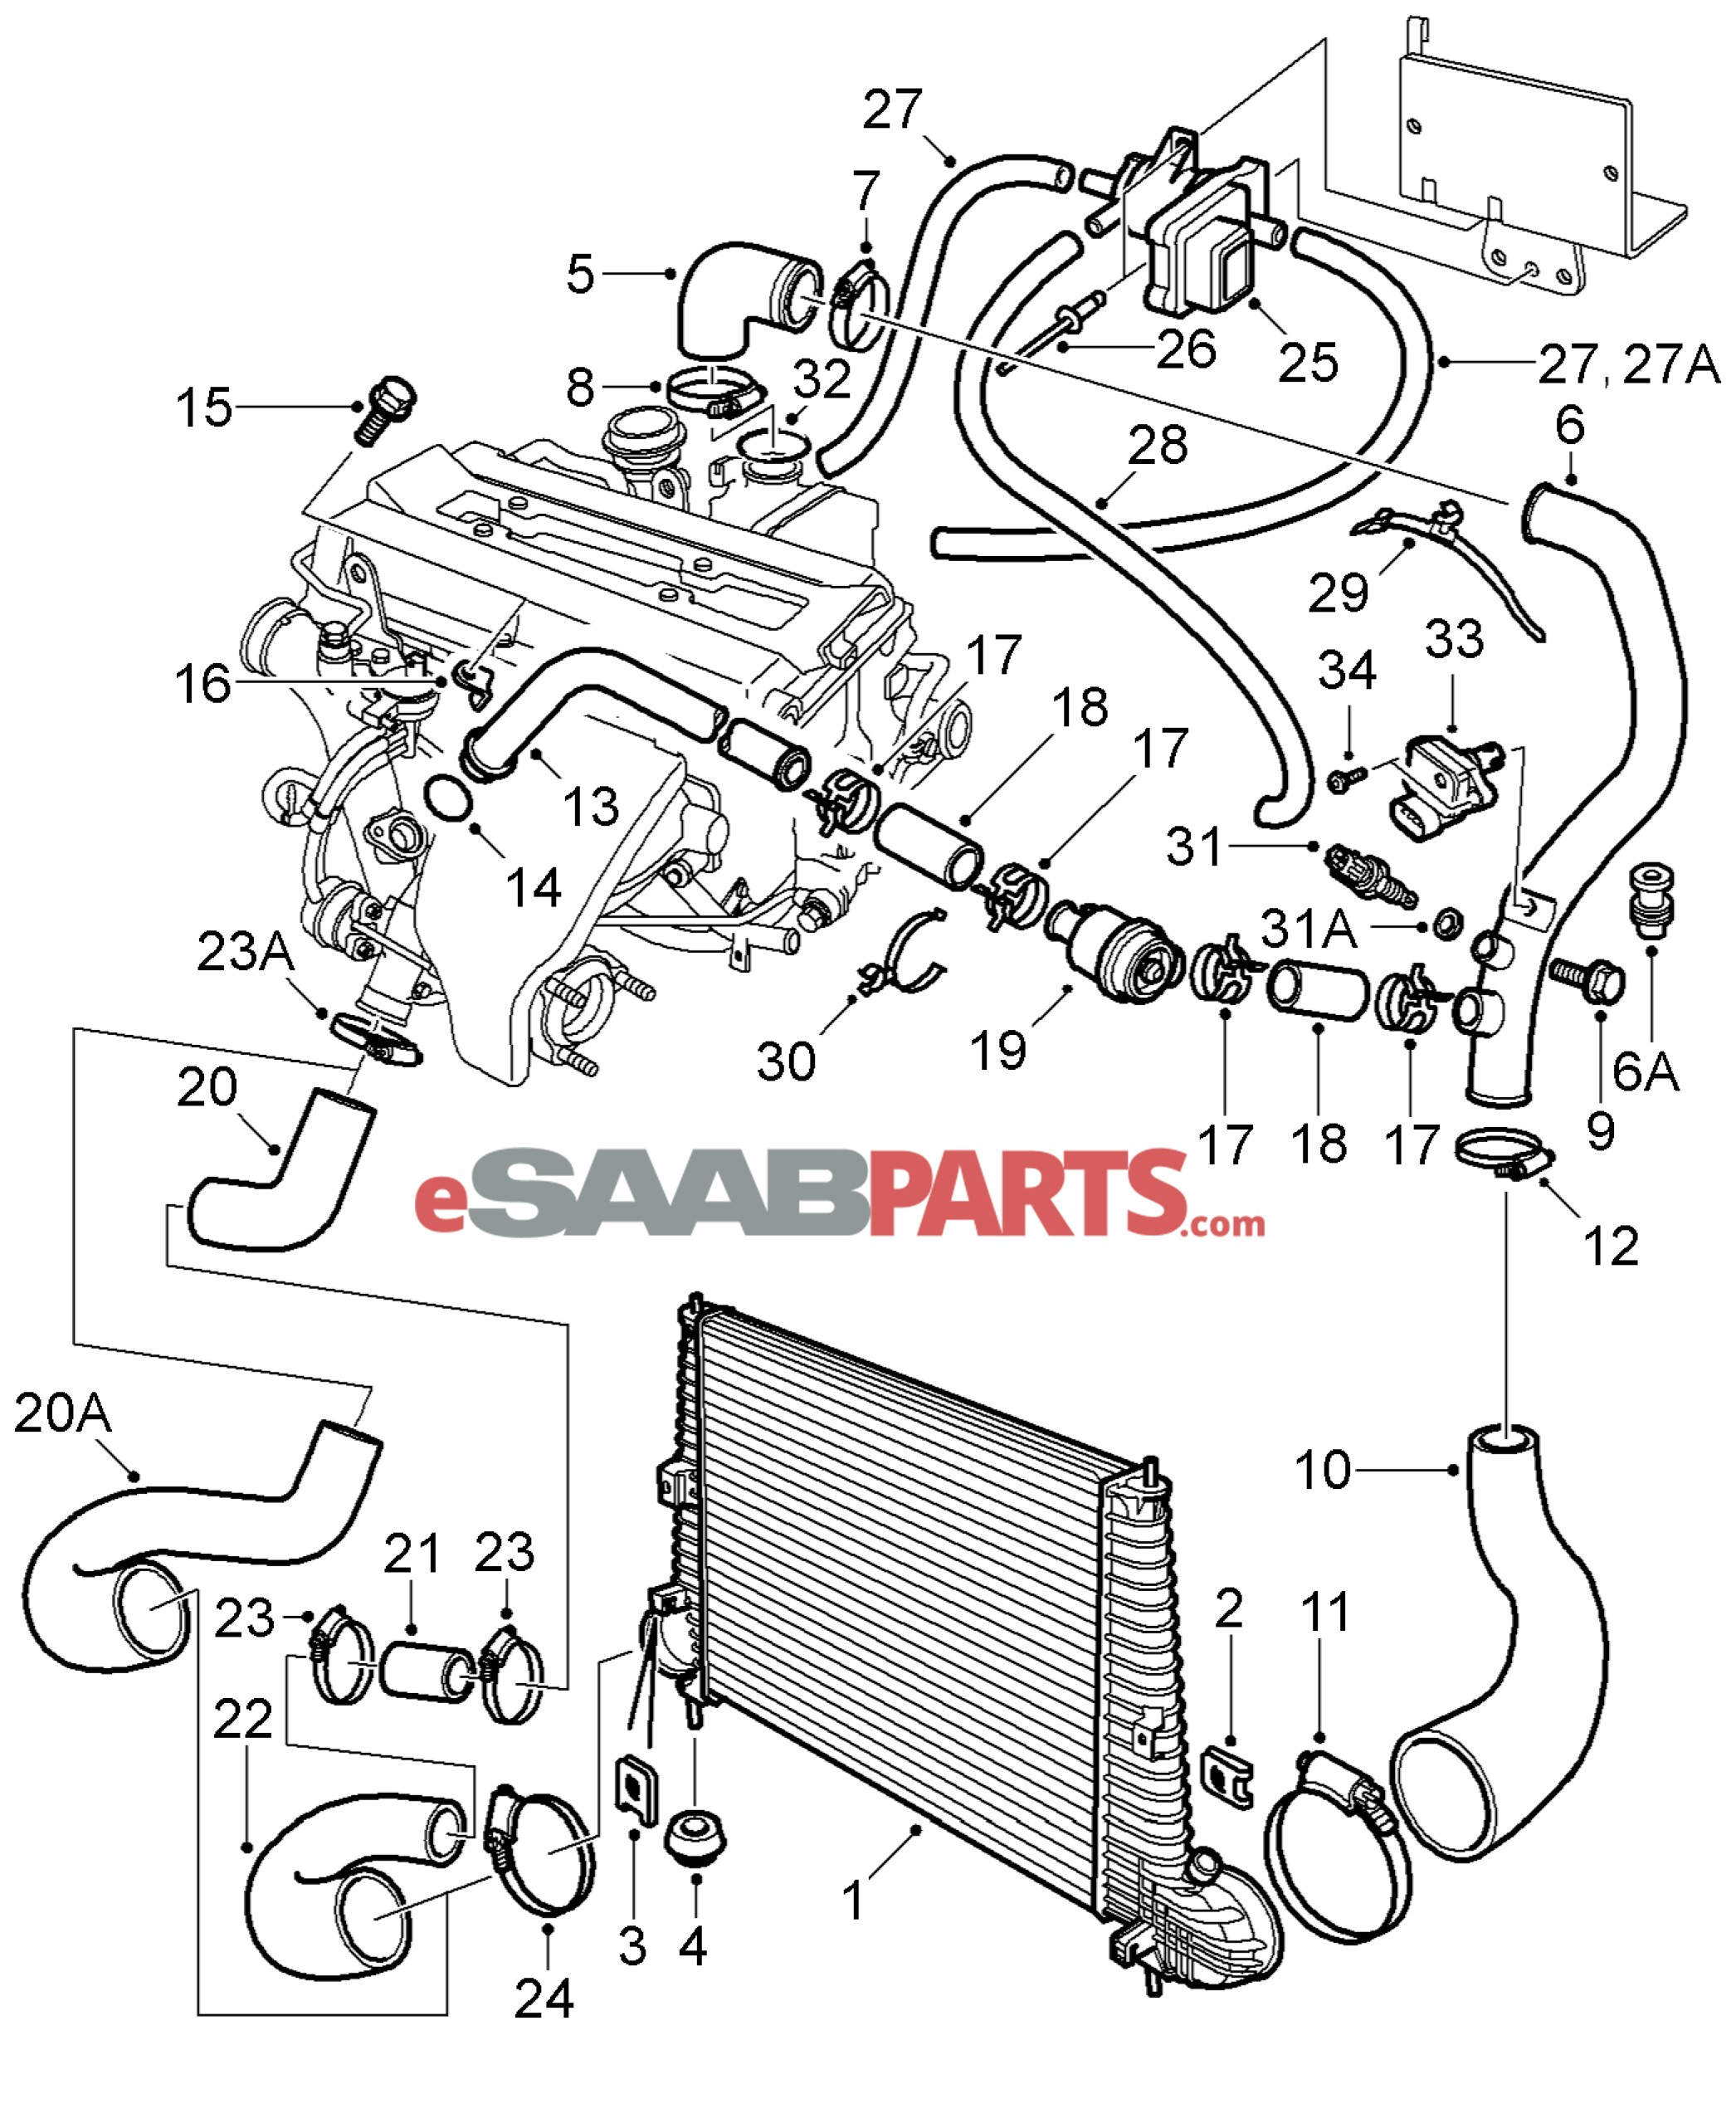 Saab 93 Fuse Box Diagram Saab 9-3 Fuse Diagram 2007 - Printable ...